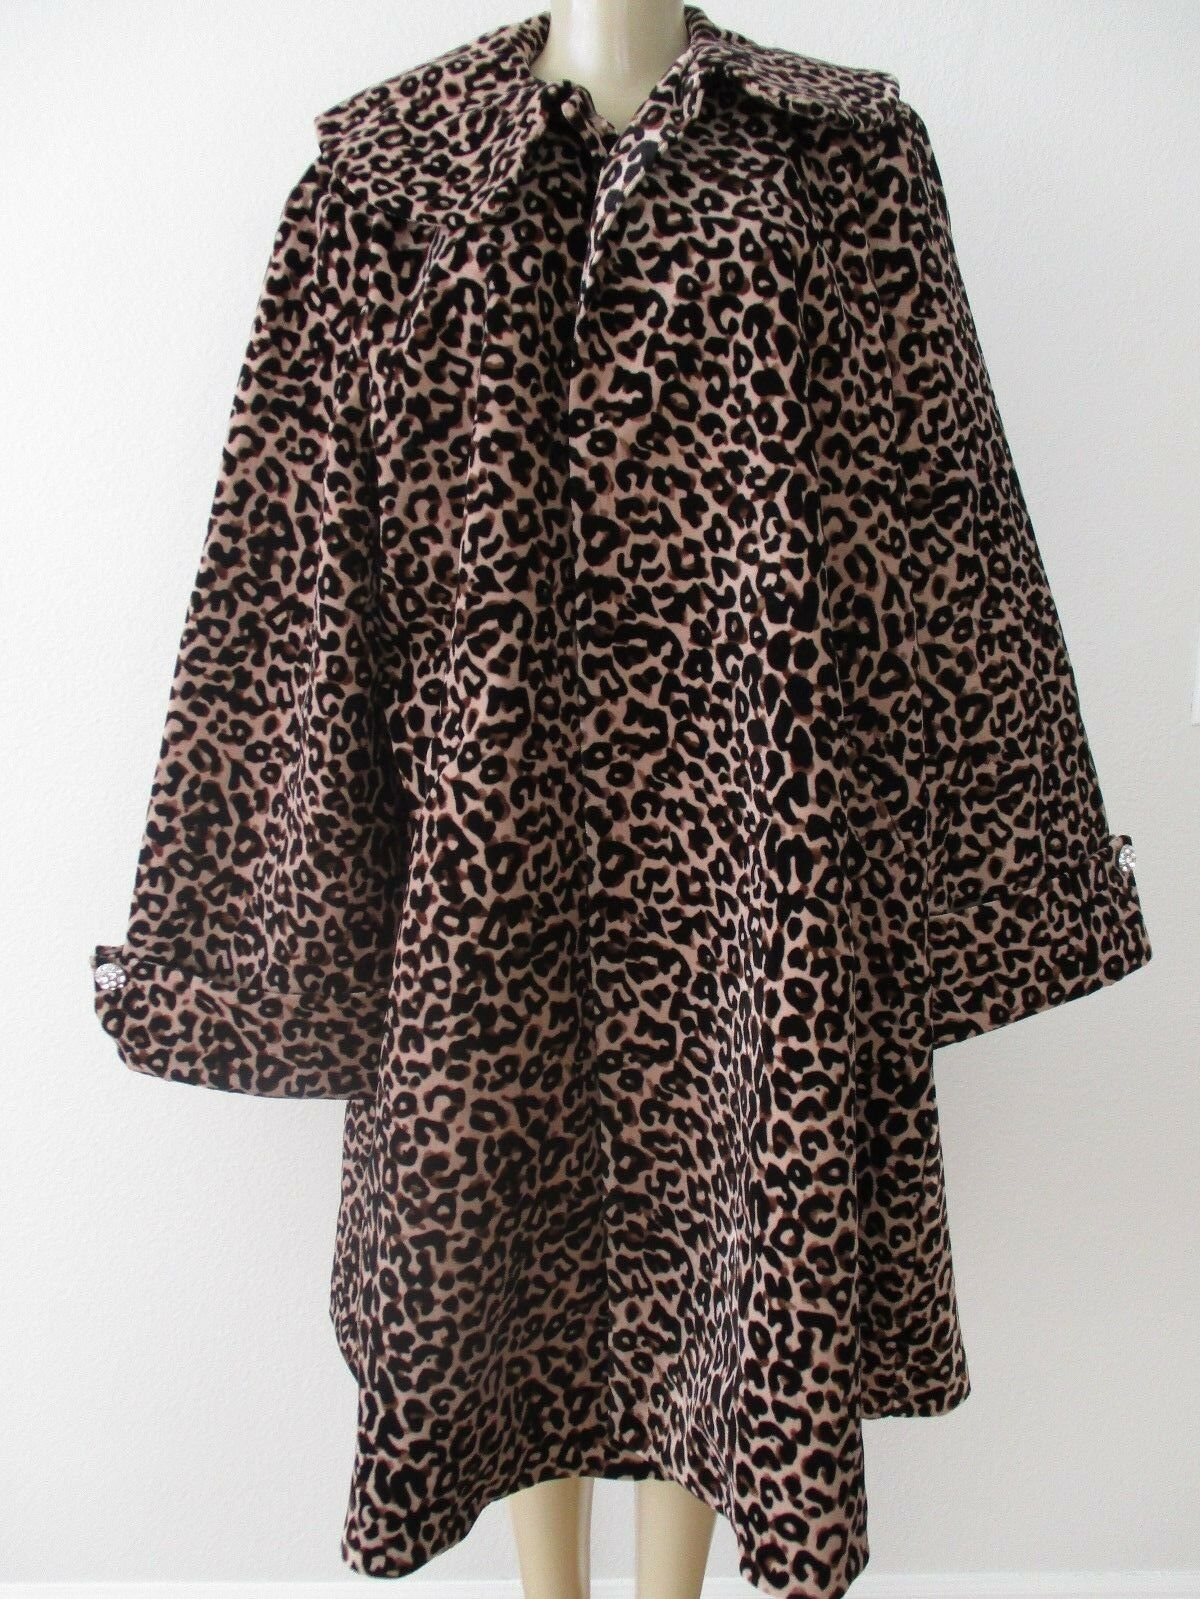 TOUCH OF CYN CYNDI LAUPER LEOPARD PRINT LONG SLEEVE SWING COAT SIZE S - NWT